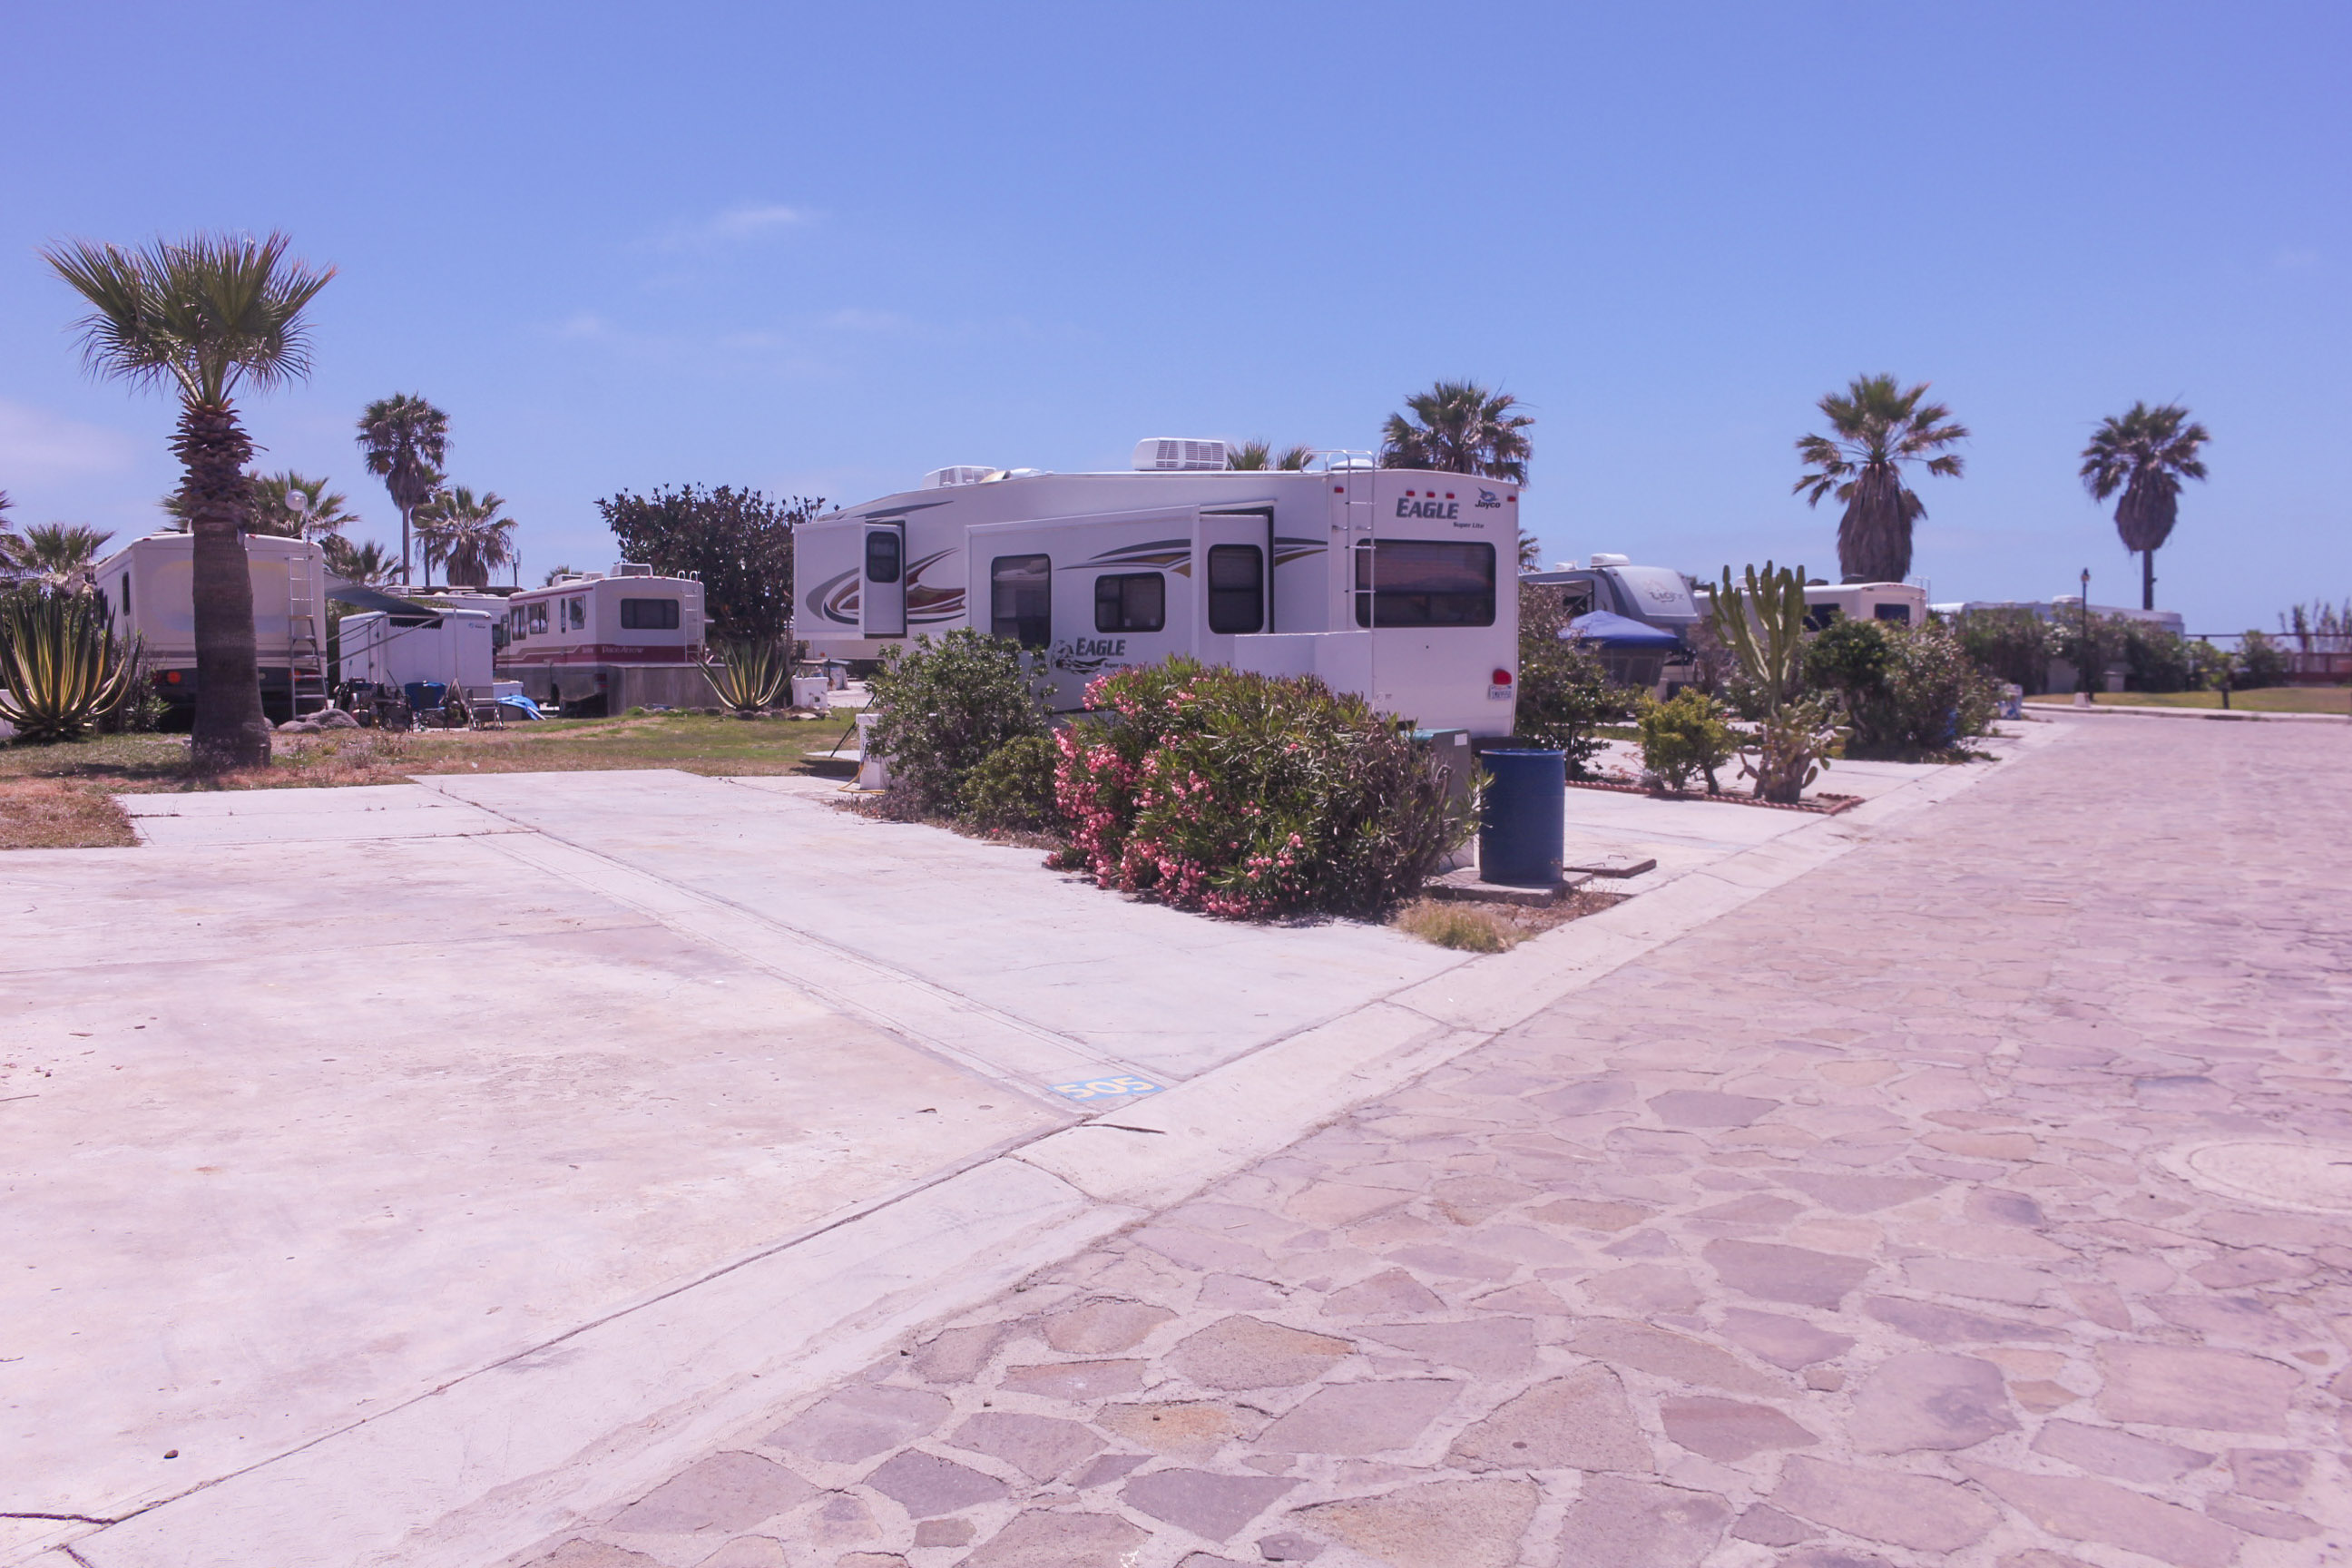 Baja Seasons Resort RV Park